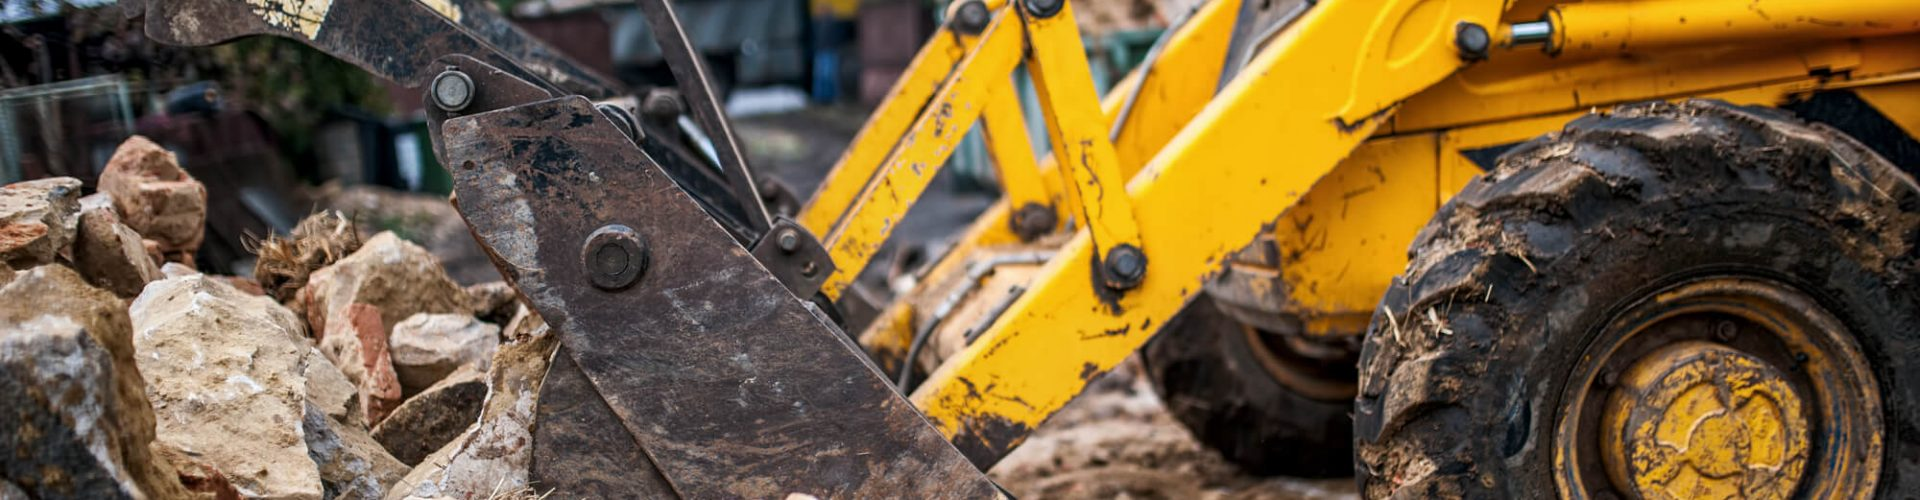 Concrete Removal Service in New Orleans - Big Easy Demolition